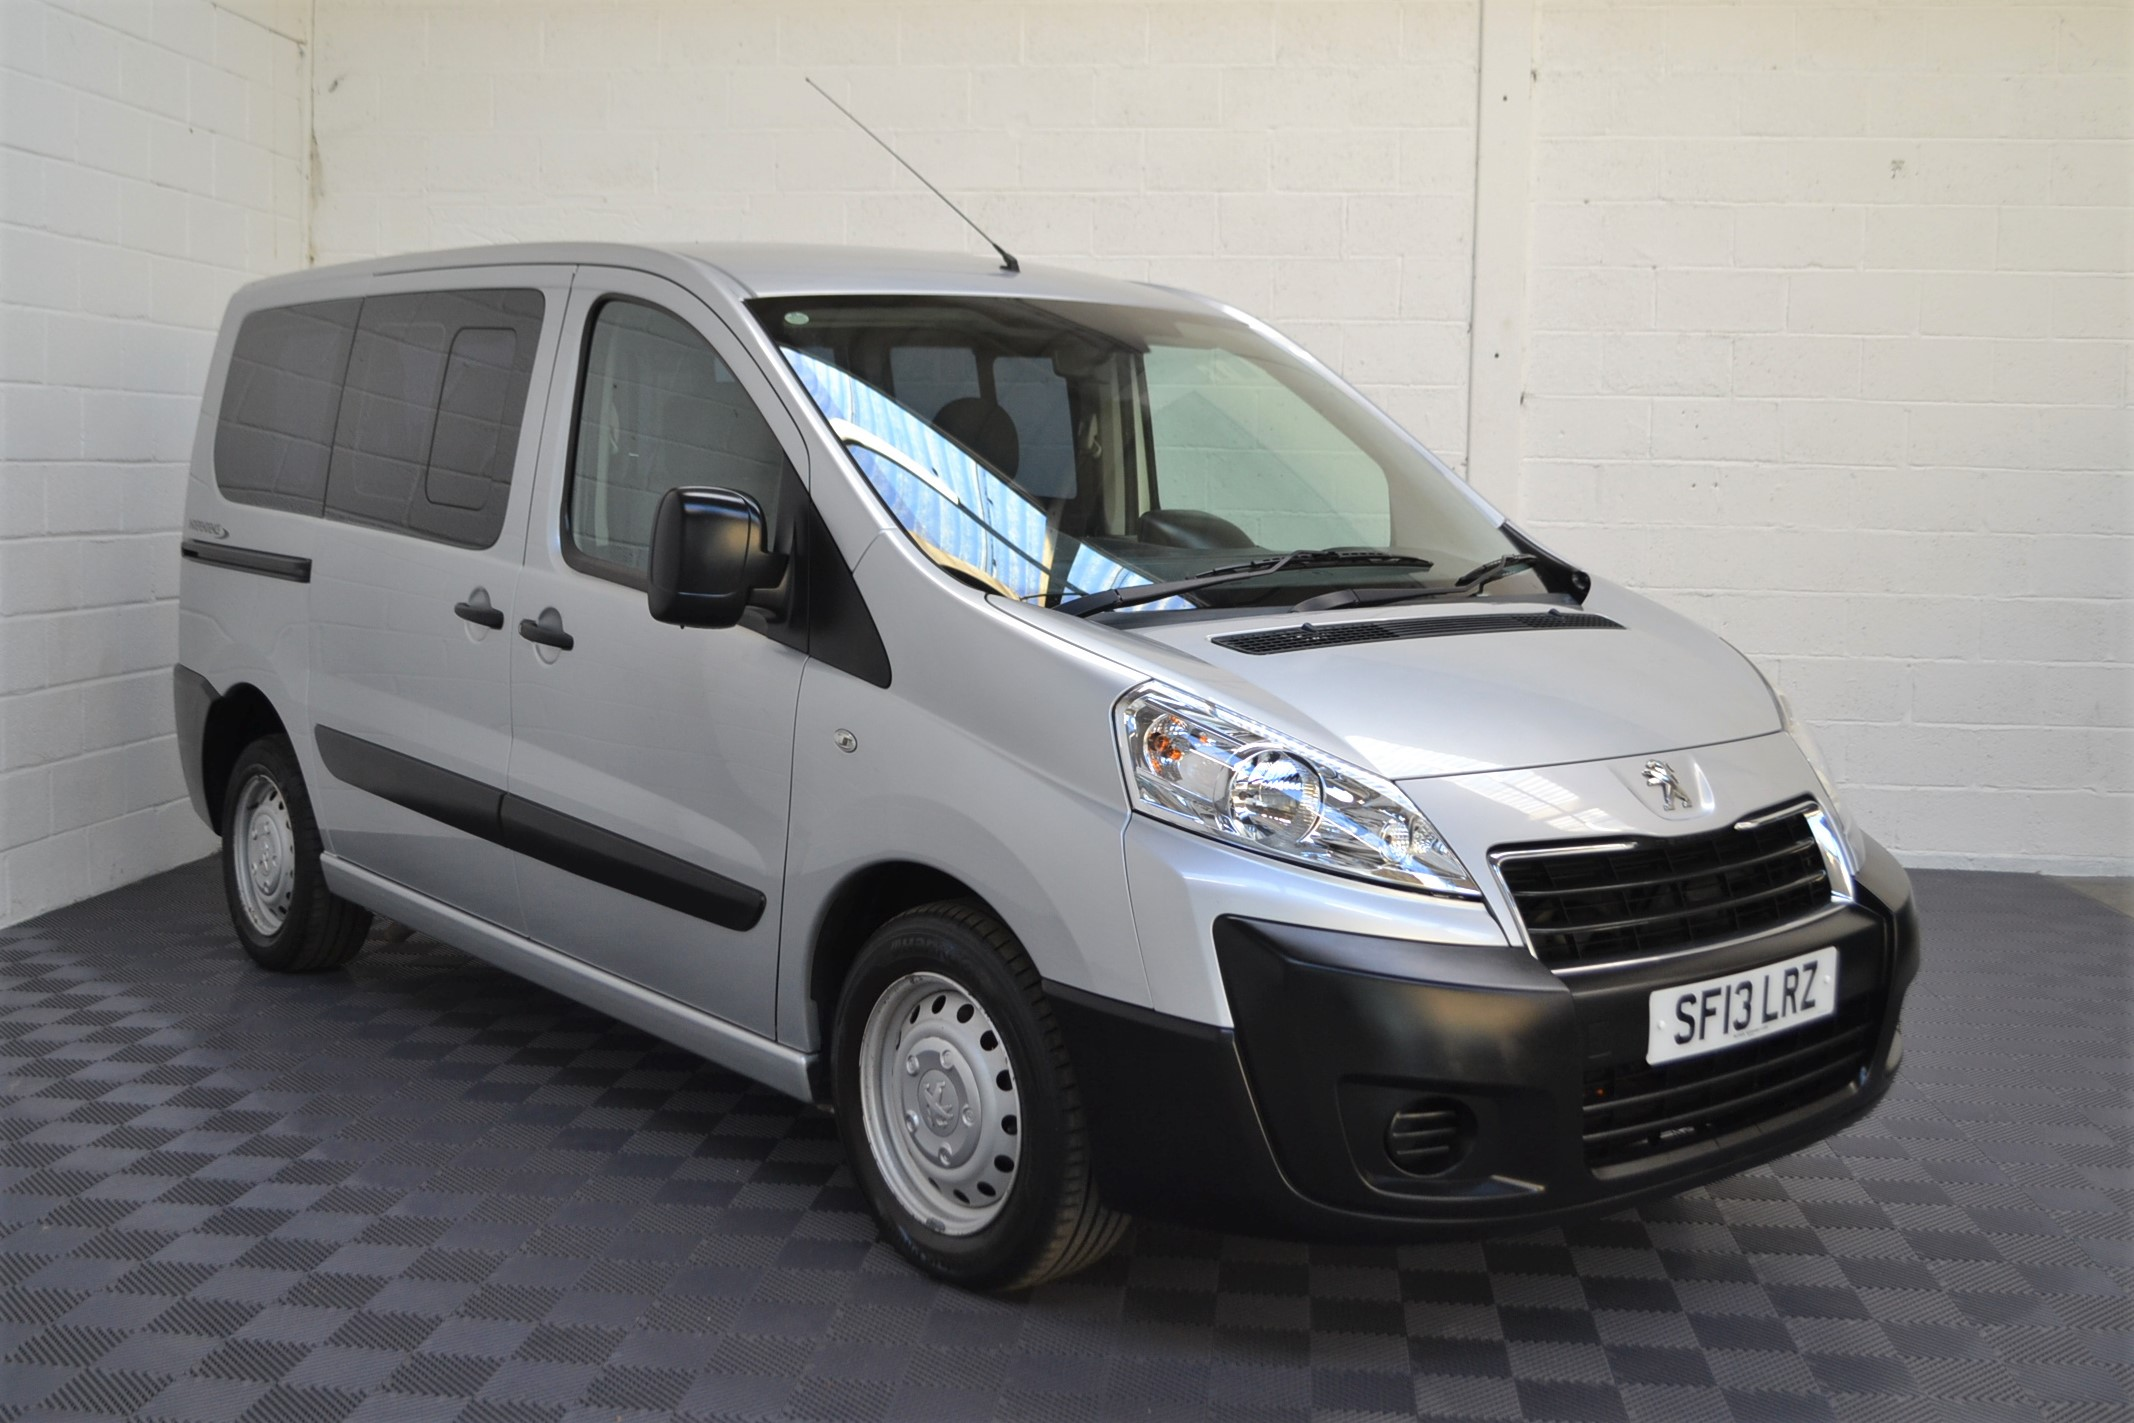 Disabled Cars For Sale Bristol Wheelchair Accessible Vehicles Used For Sale Somerset Devon Dorset Bath Peugeot Expert SF13 LRZ 11